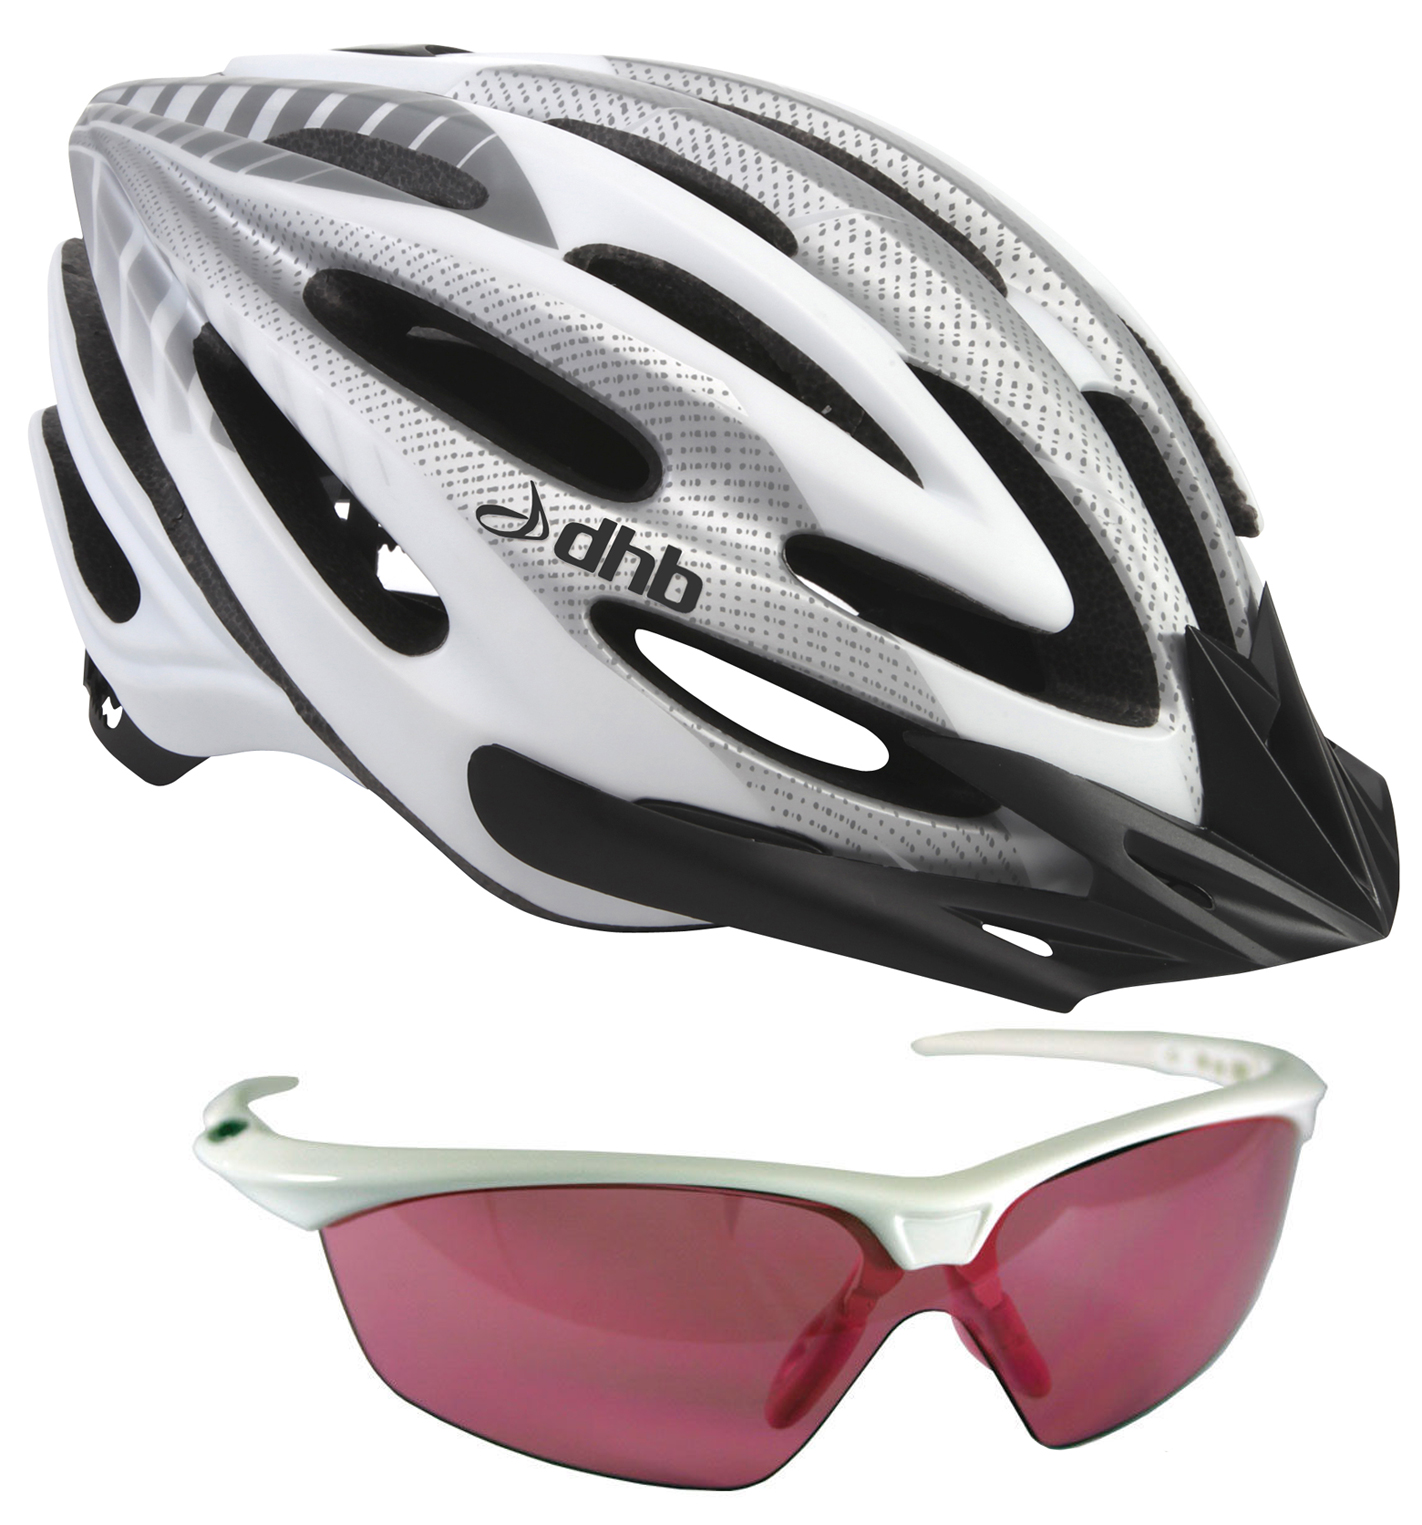 dhb iON Helmet and Women's Triple Lens Sunglasses